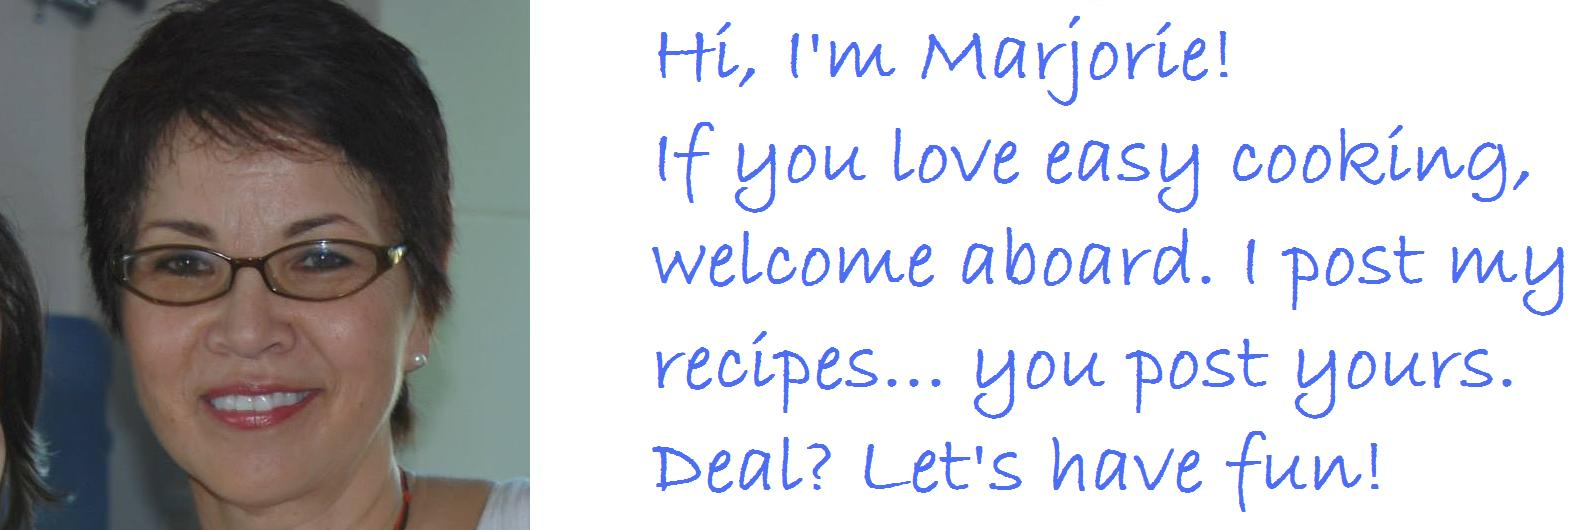 Easy Recipes, Etc - by Marjorie Marina